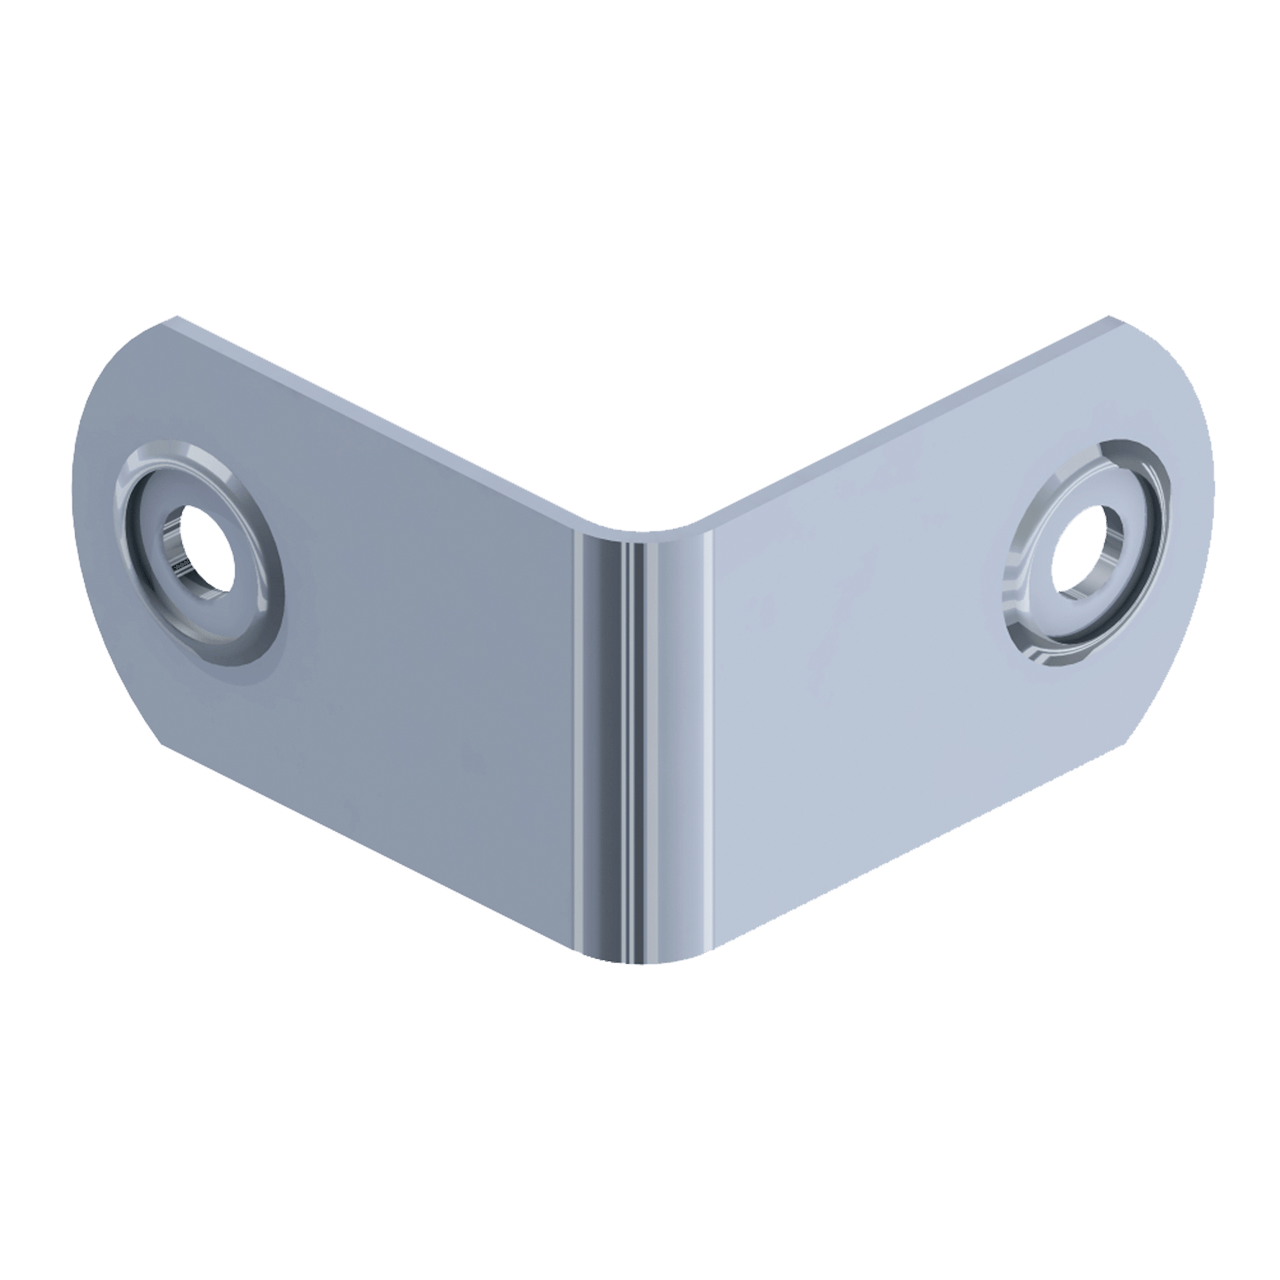 Two-Hole Clamp, 3/4 view